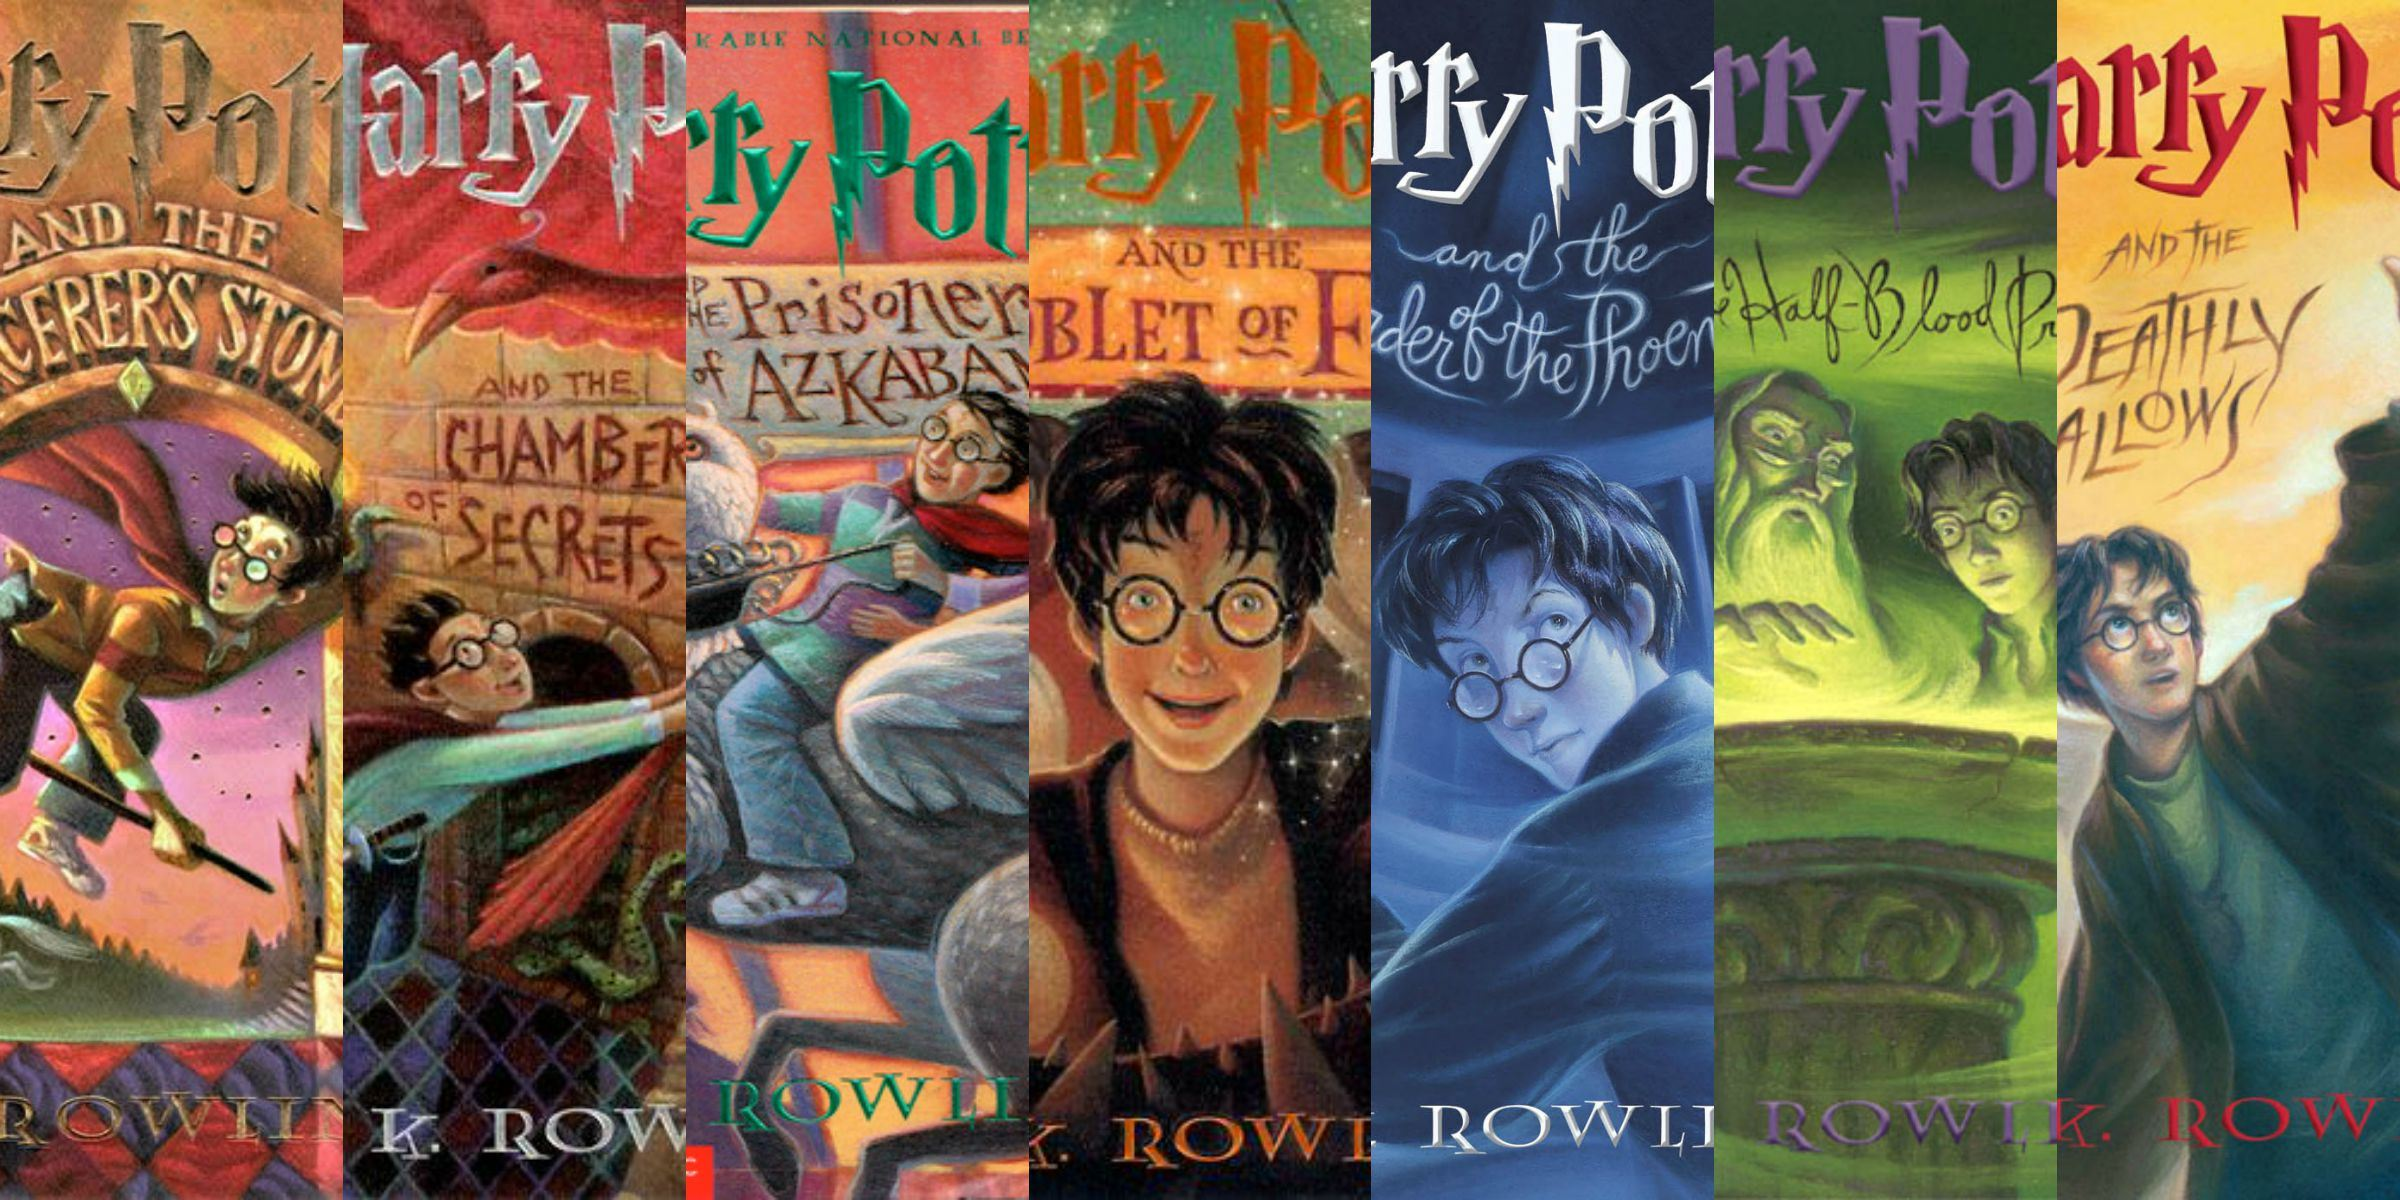 Harry Potter Series Opens in new window